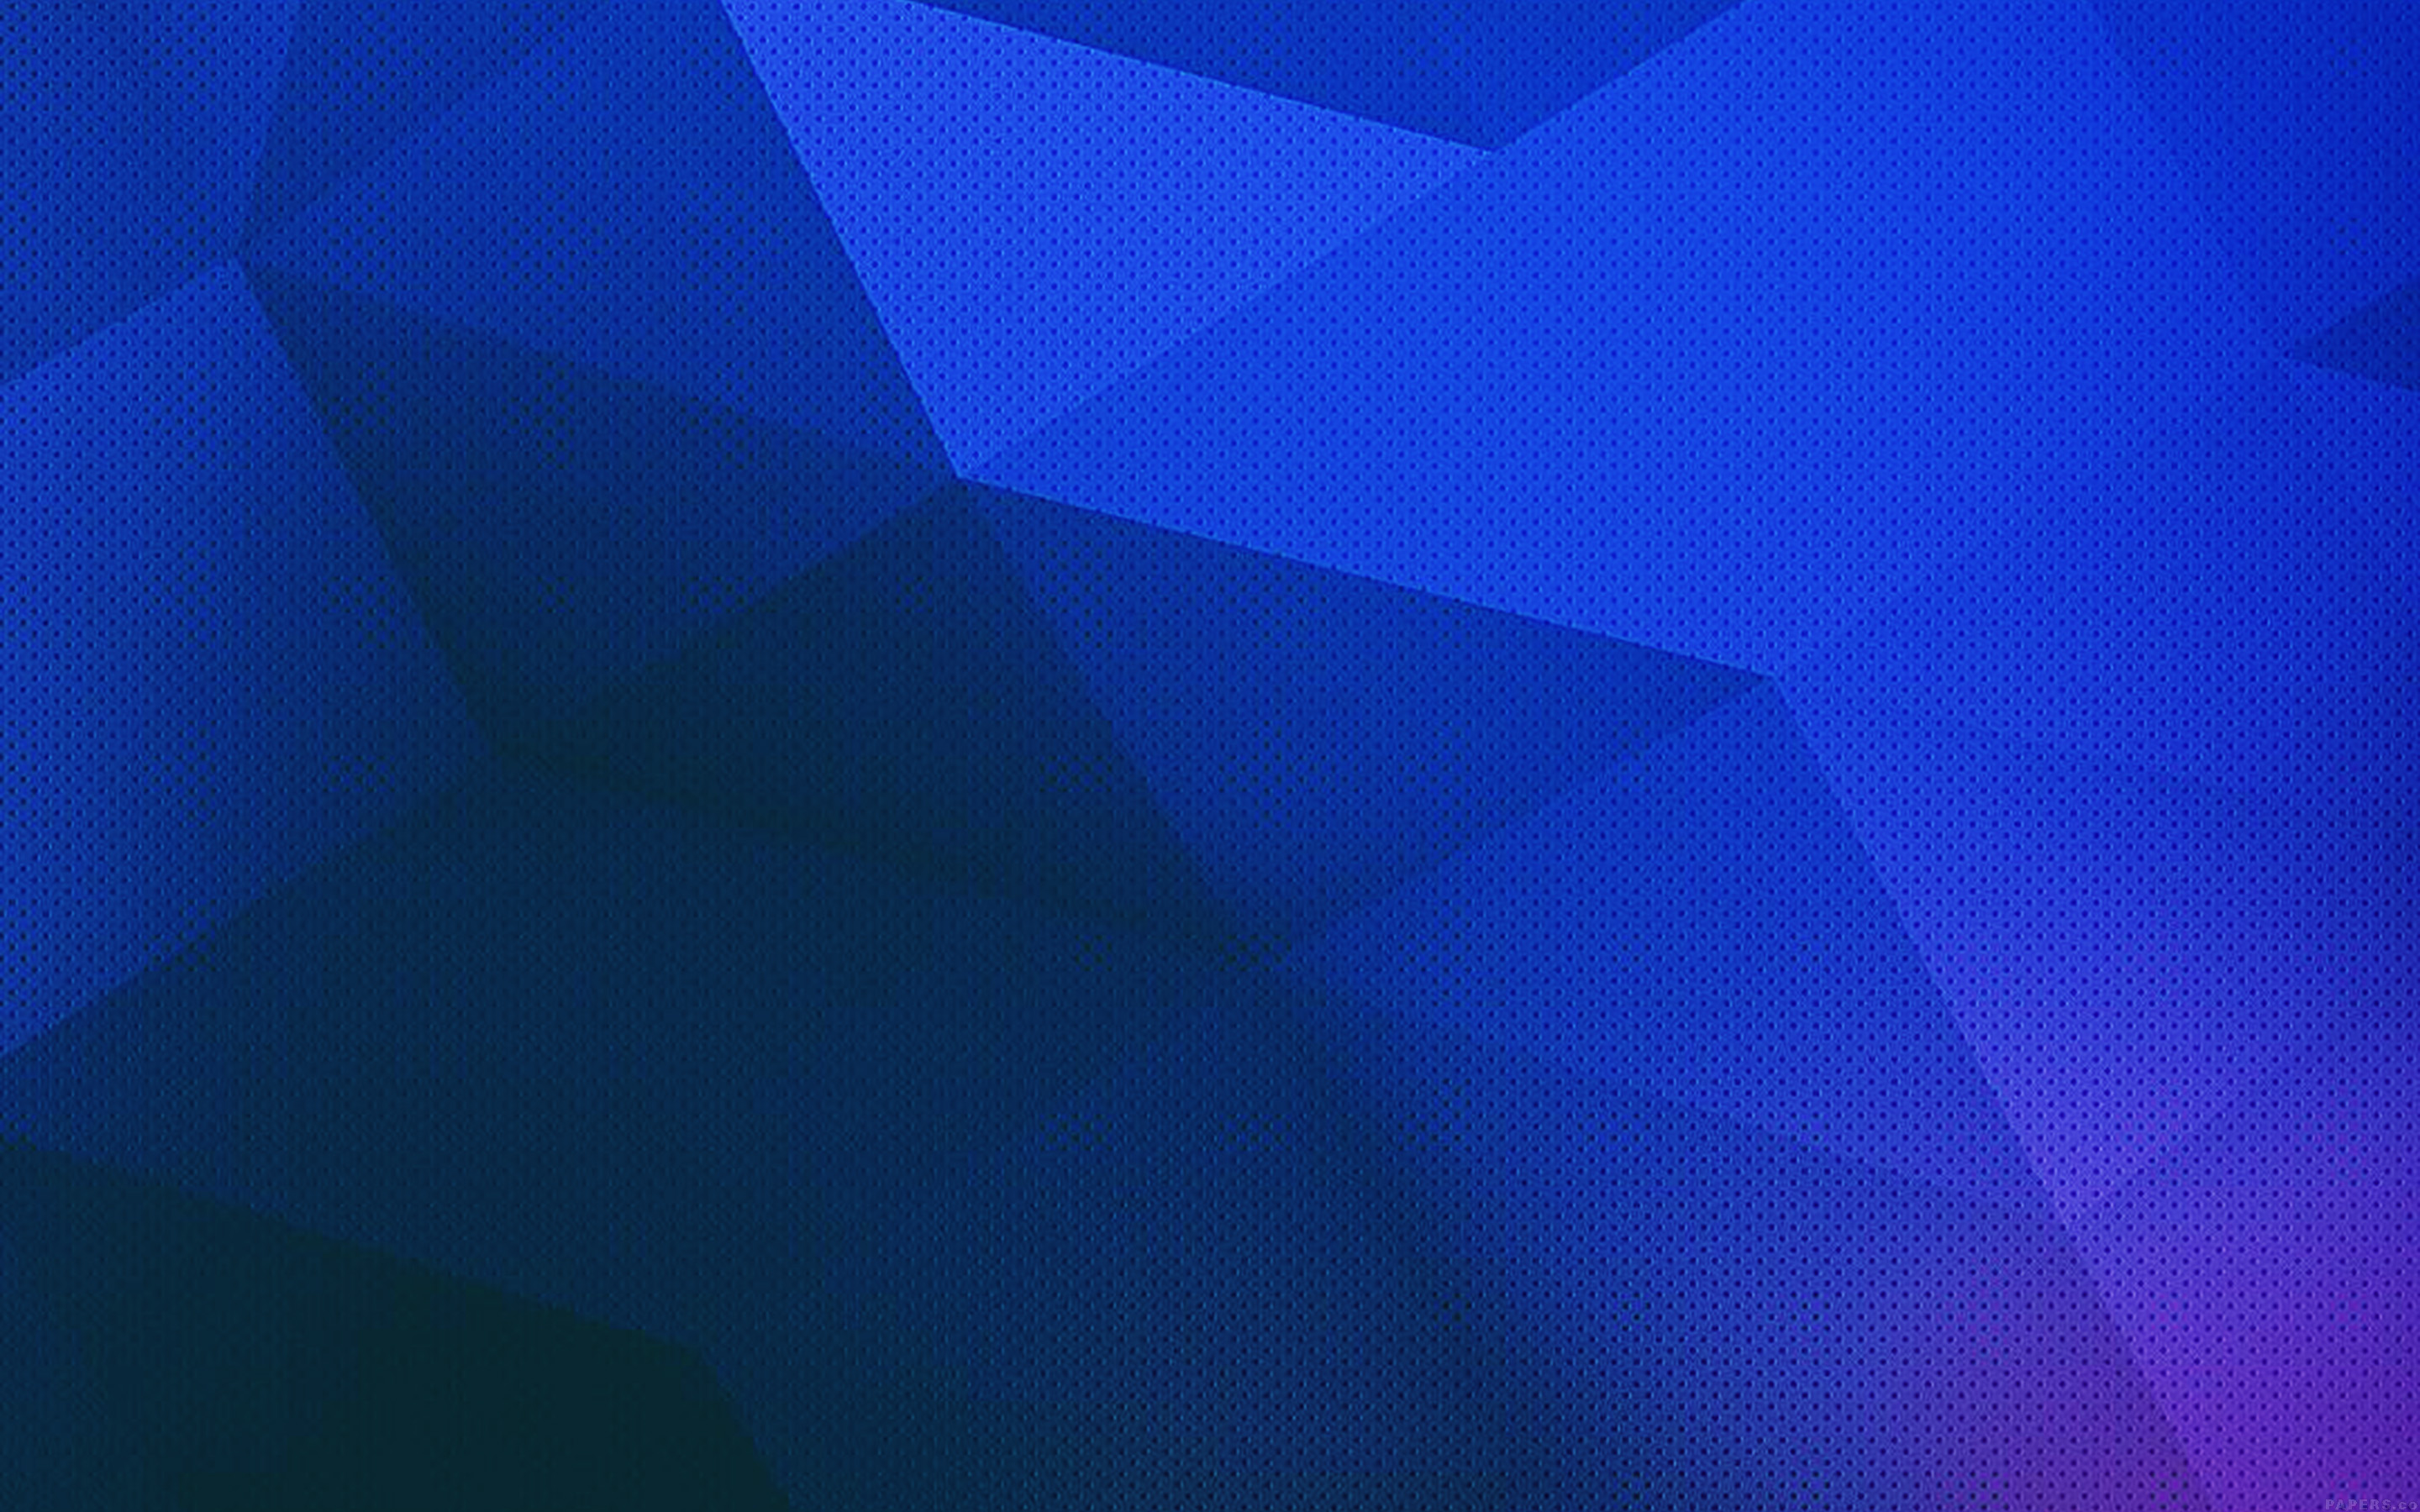 Xiaomi Redmi Note 5 Pro Wallpaper With Abstract Blue Light: Vf90-vector-art-blue-light-sea-triangles-pattern